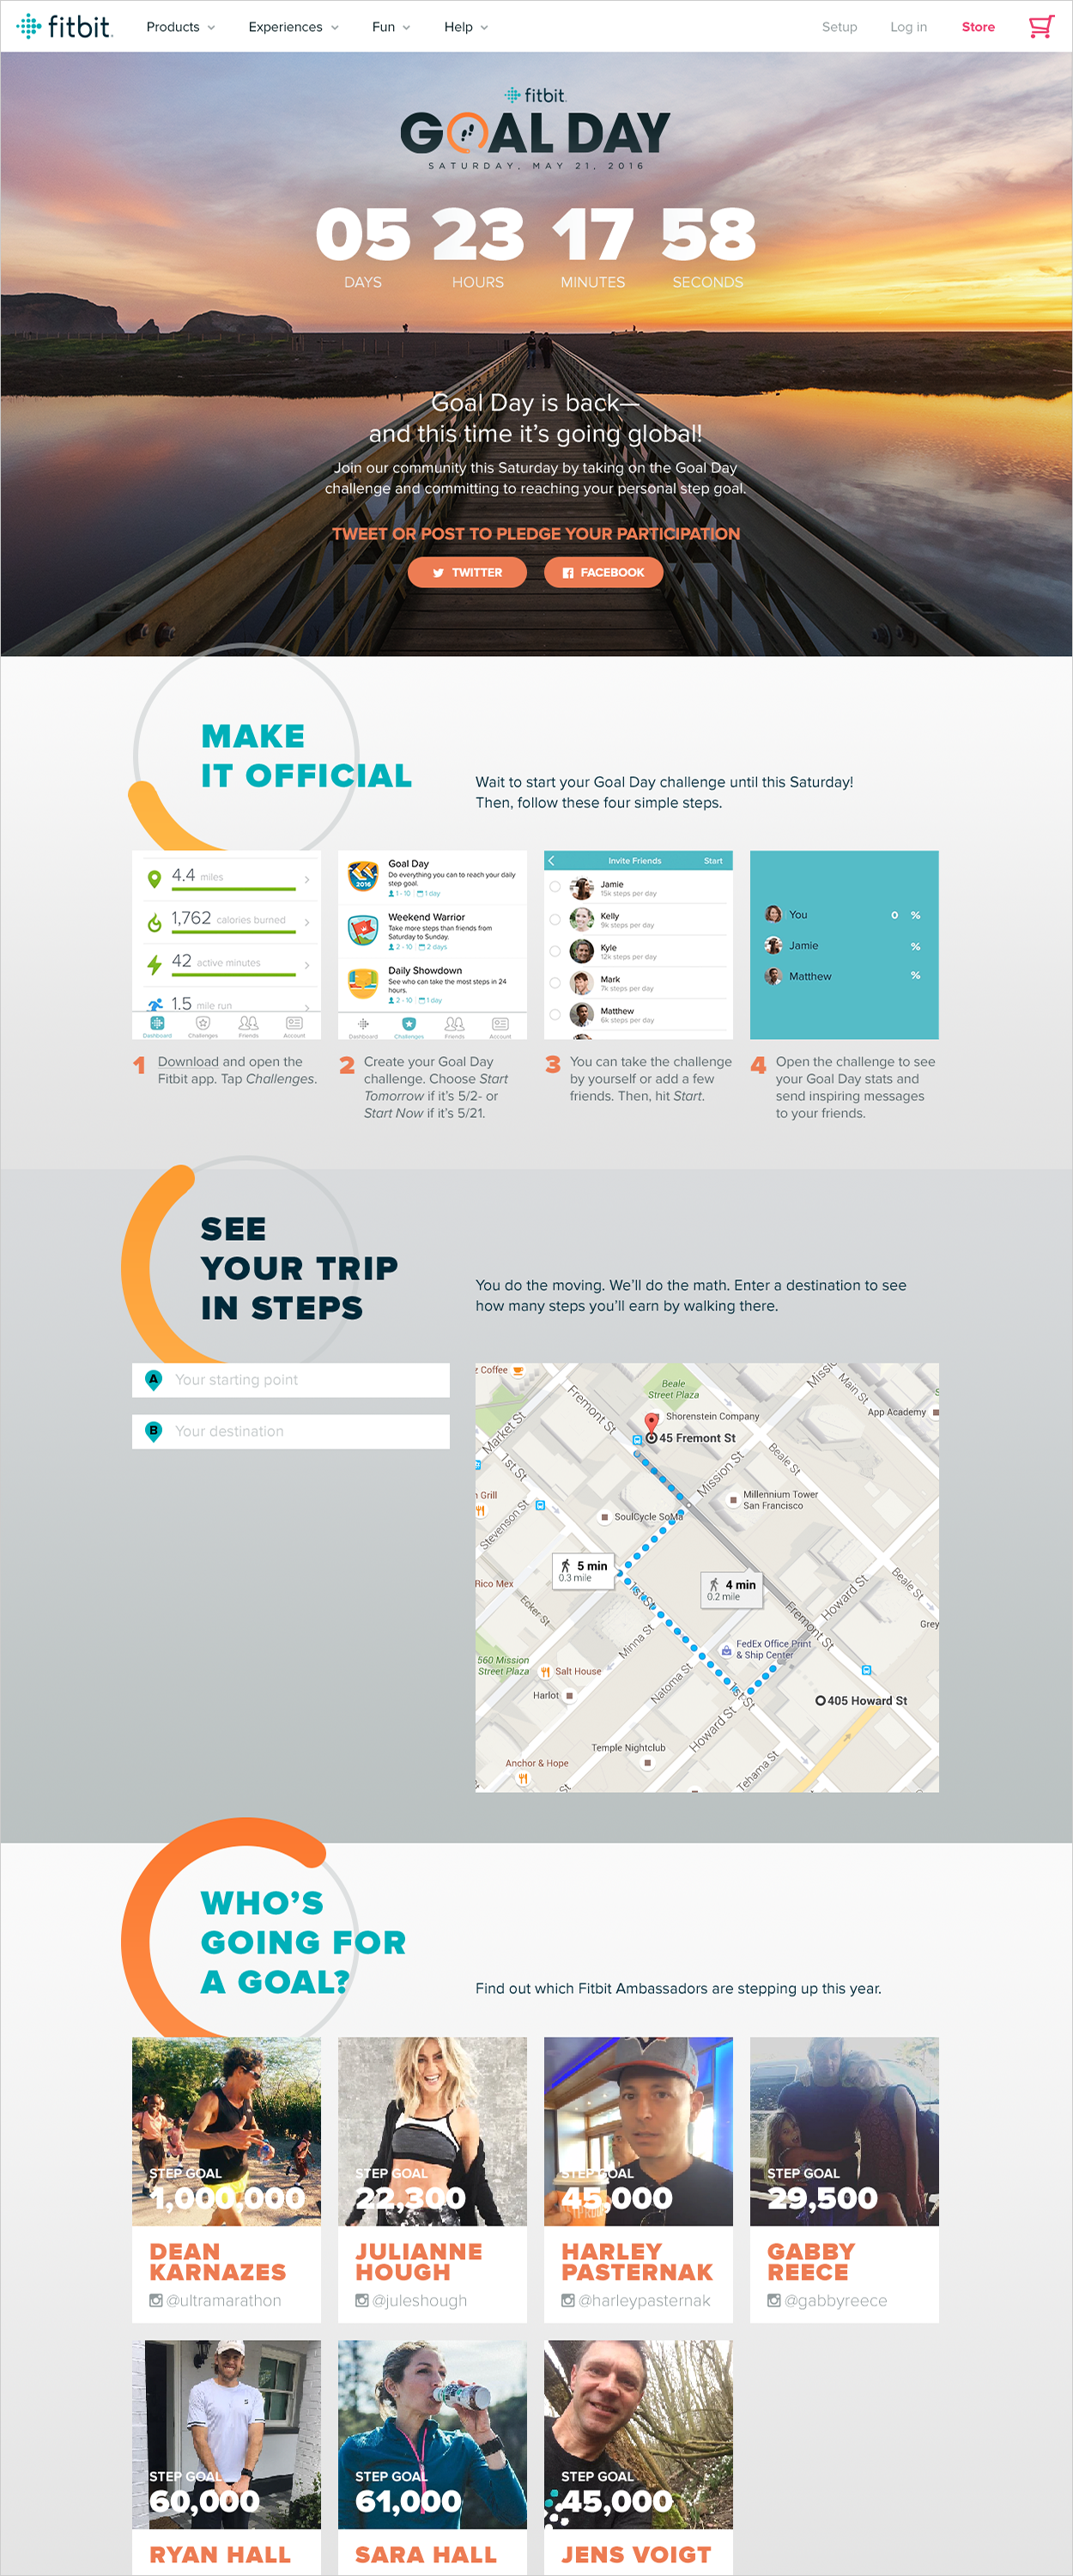 Taking it global - Our first Goal Day in 2015 was so successful, we knew we had to do it again in 2016 — and on a way bigger scale!For the first time, we expanded Goal Day to our Fitbit communities around the world. We also put together a landing page that converted miles (or km) into steps, and recruited our many A-list ambassadors to pledge huge goals of their own.Finally, we worked with our product team to create a special challenge in the app,as well as a limited-edition Goal Day 2016 badge as extra motivation for our users to crush it.As a result, Goal Day is now a bona fide, completely Fitbit-owned holiday that delivers huge engagement — and is still going strong.